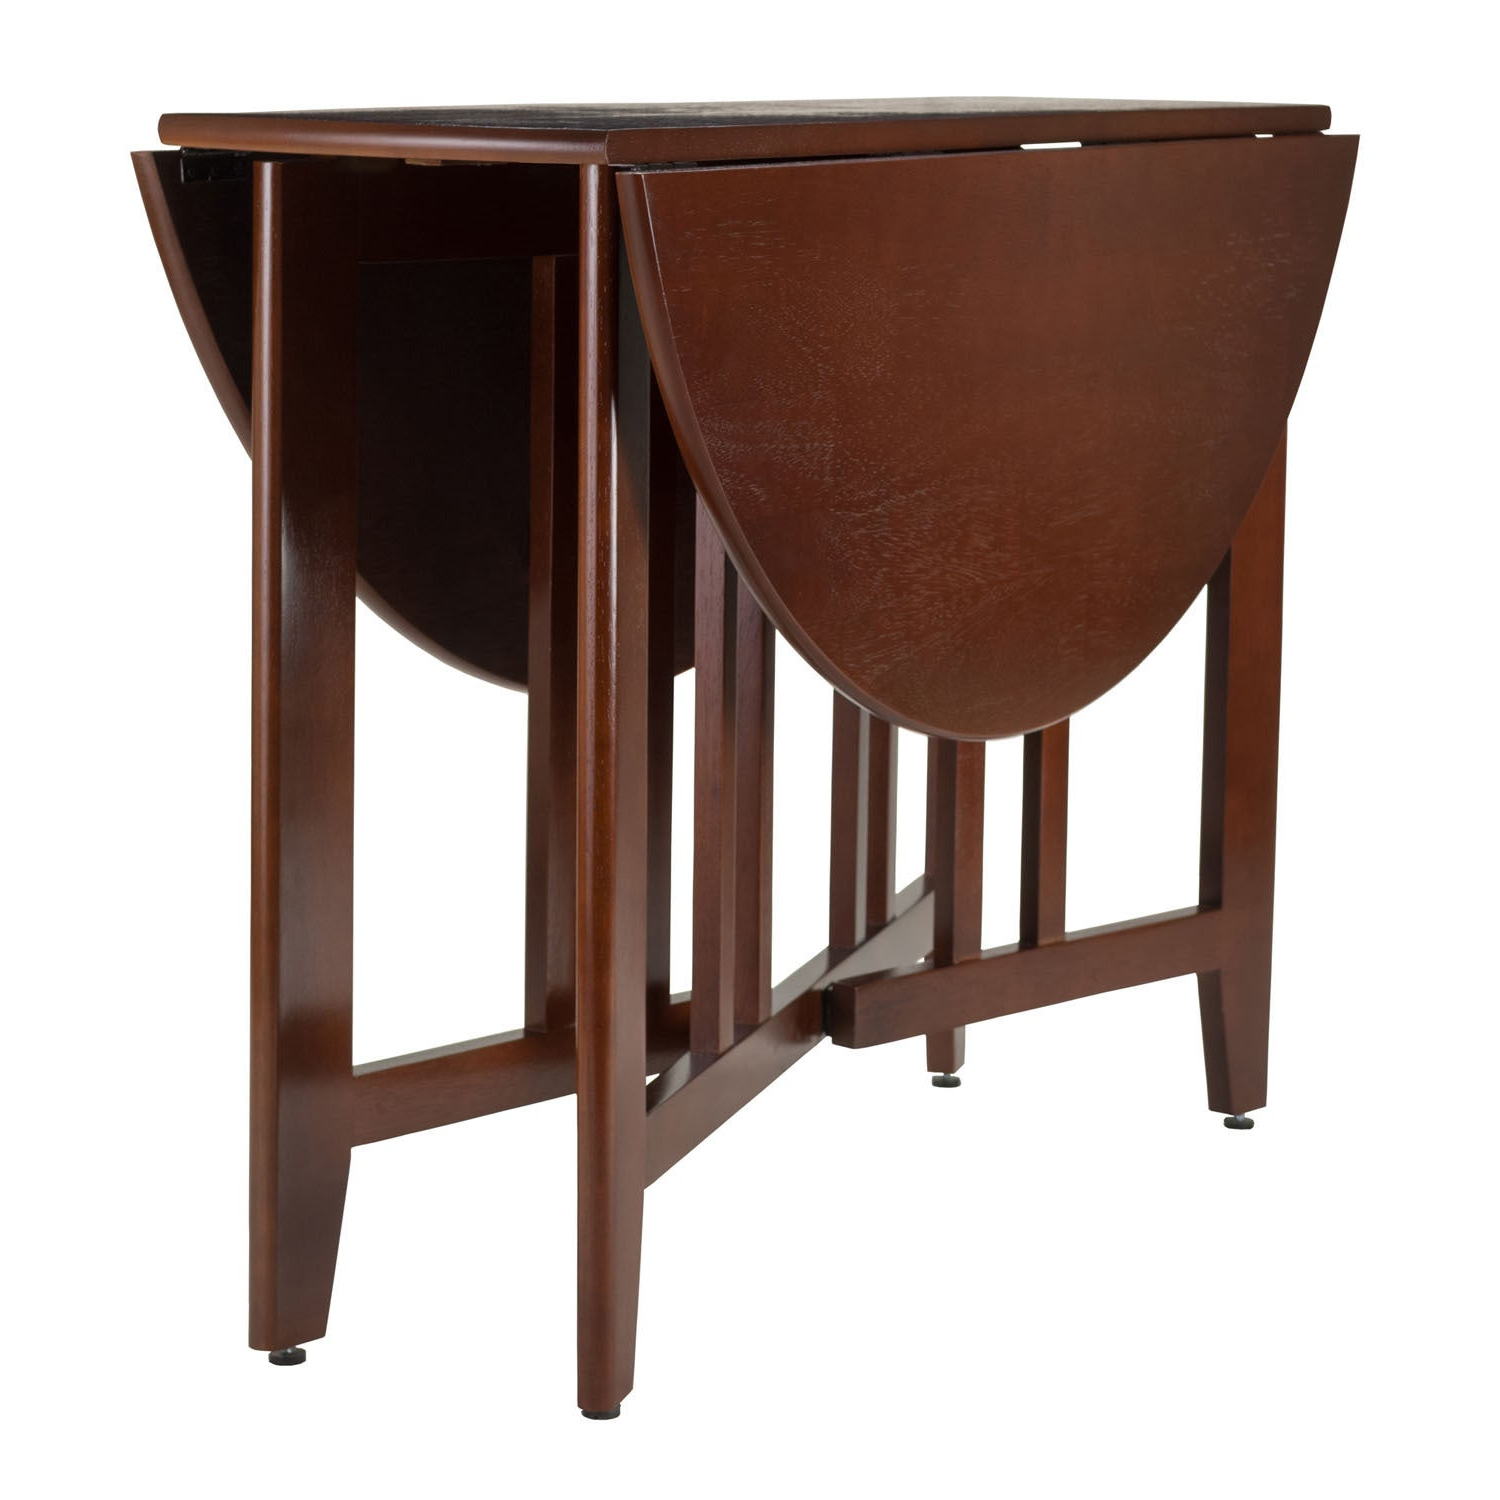 """Current Alamo Double Drop Leaf Round 42"""" Table Mission – N/a Inside Alamo Transitional 4 Seating Double Drop Leaf Round Casual Dining Tables (View 14 of 26)"""